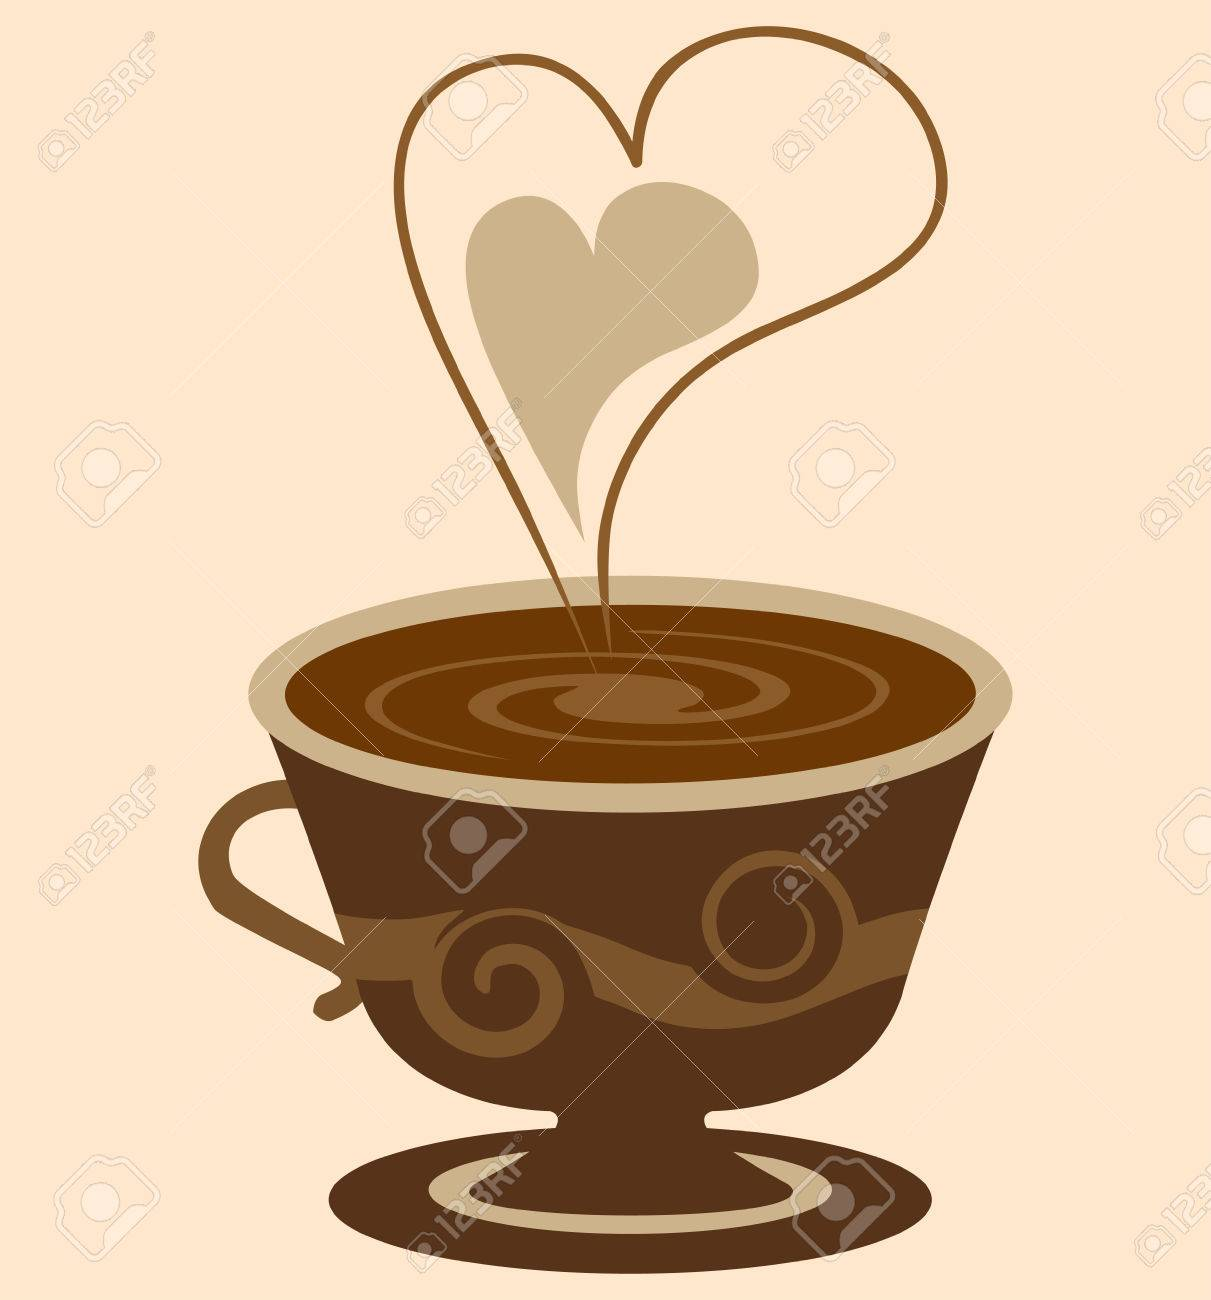 Coffee cup vector free - Hot Coffee Cup Vector Illustration Stock Vector 5839567